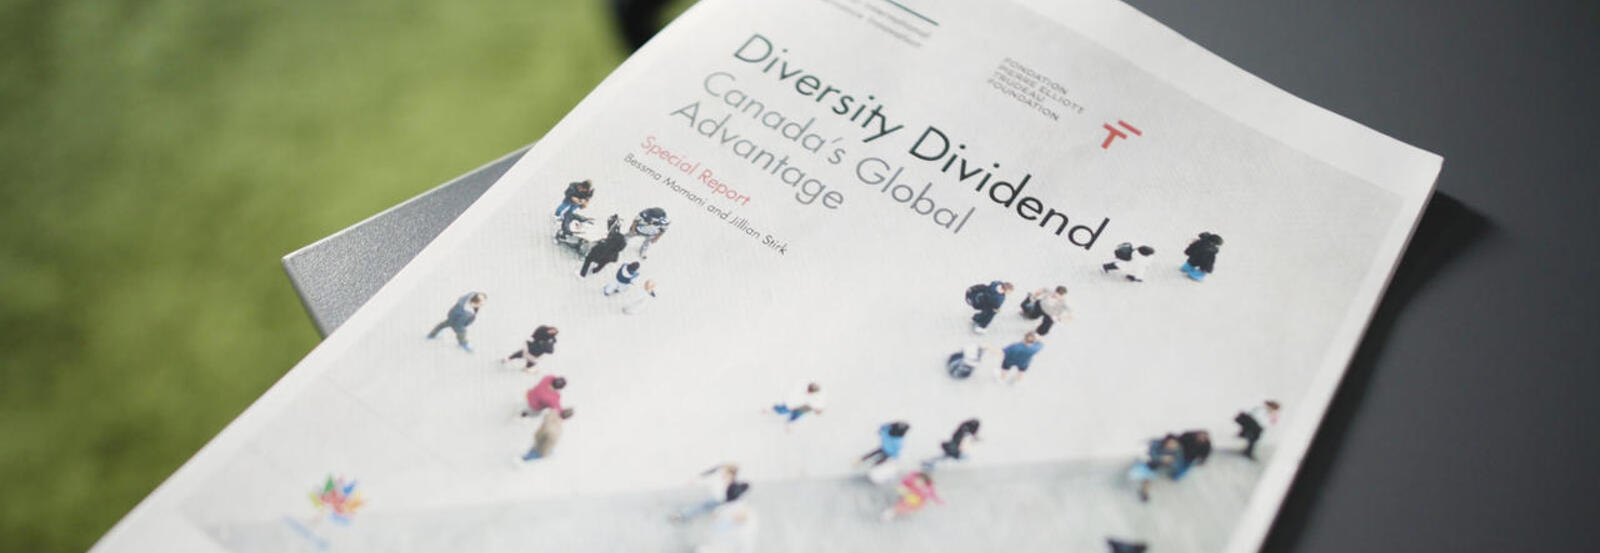 Diversity is good for business banner